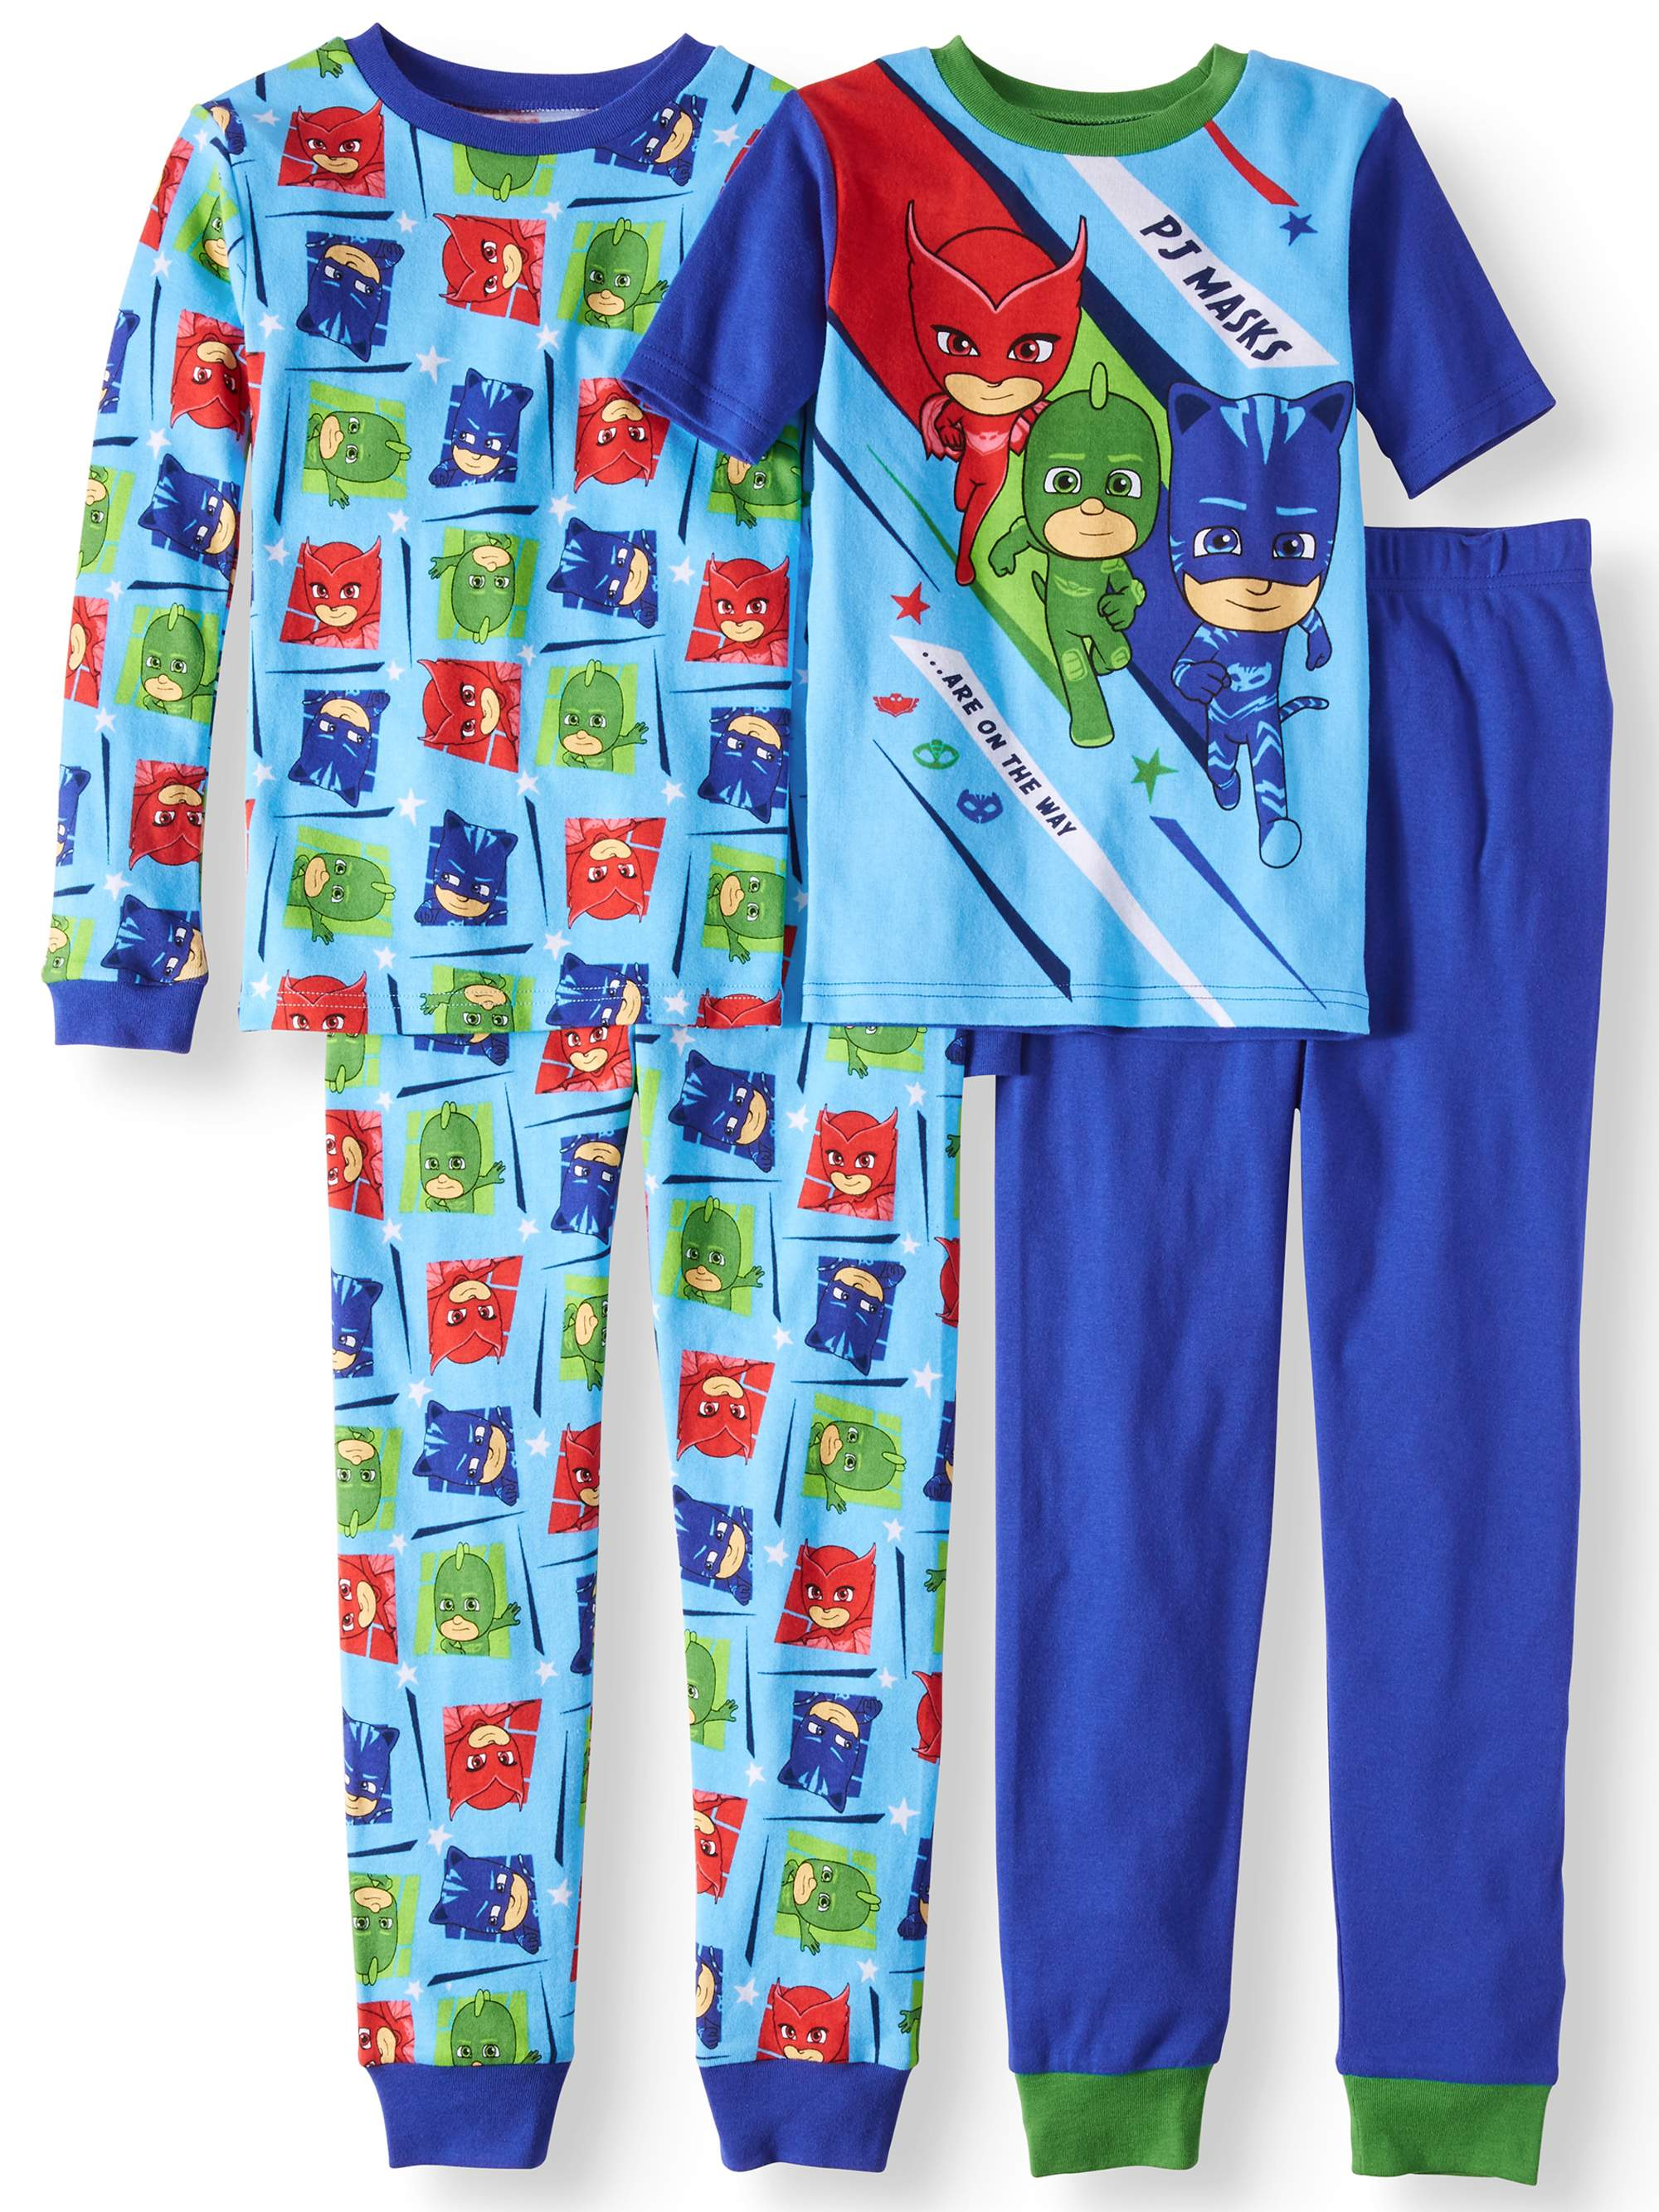 PJ Masks Boys' Cotton 4-Piece Pajama Sleep Set